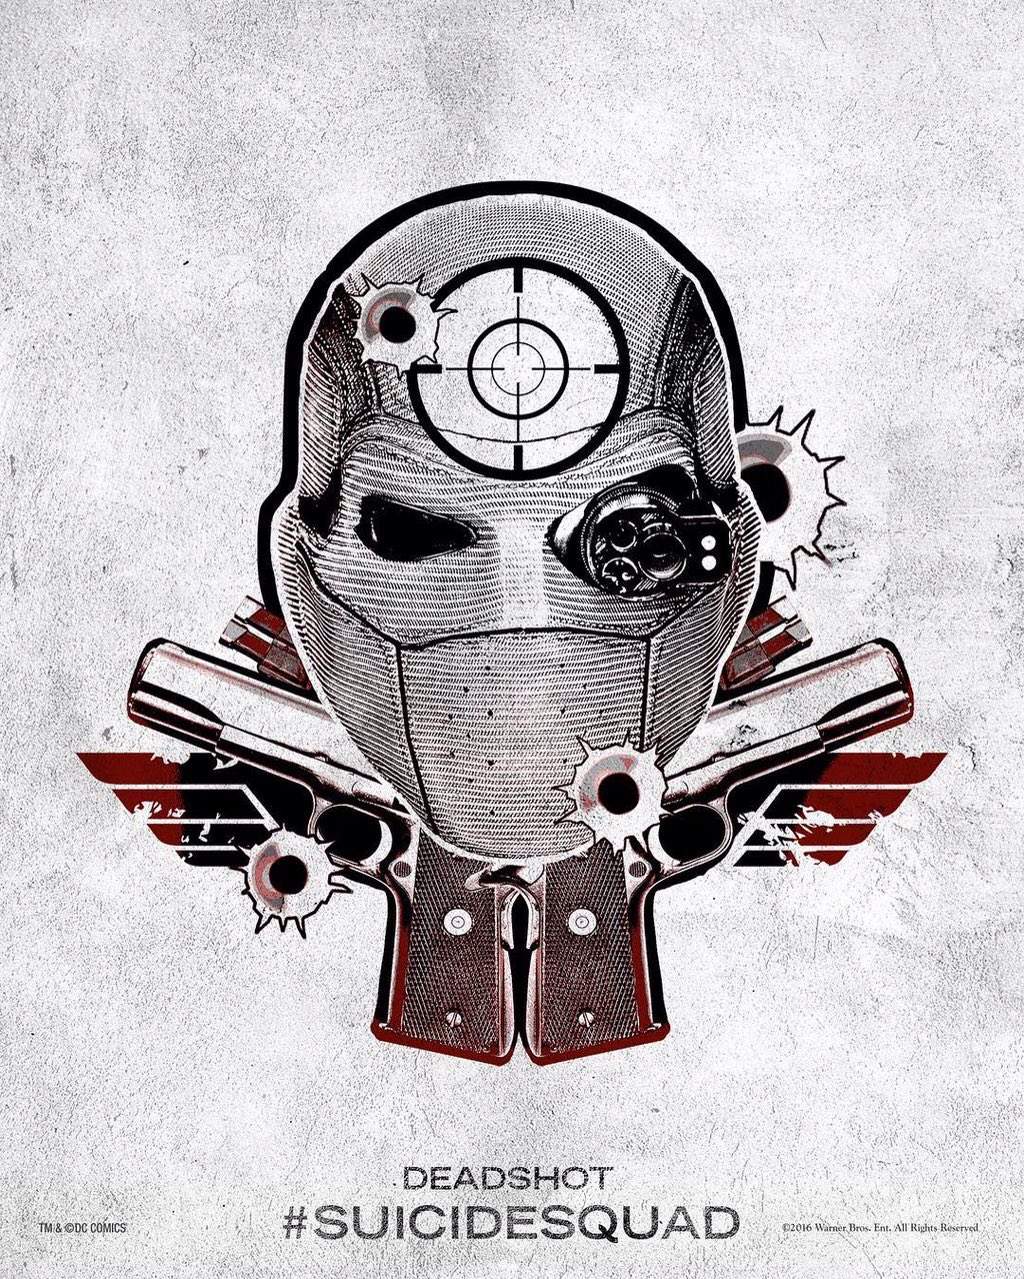 Harley's Tattoo Parlor Posters - Deadshot